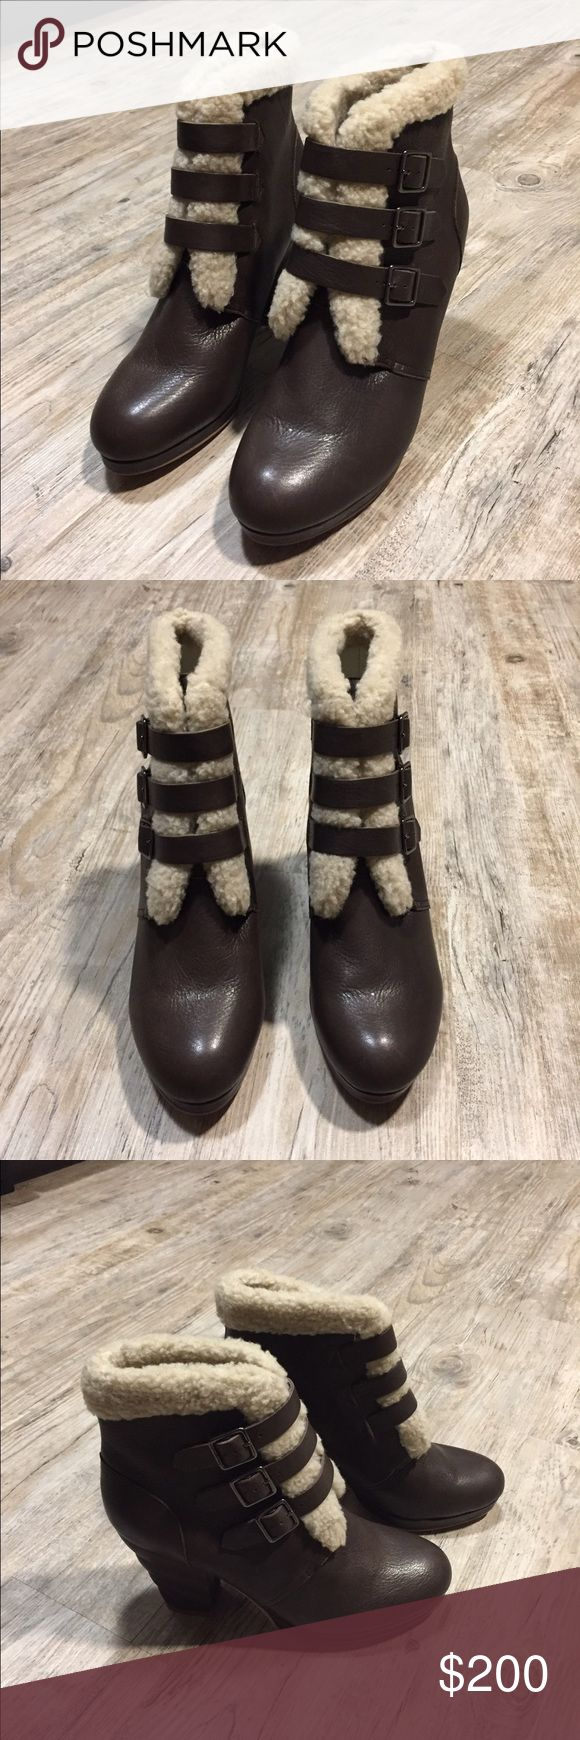 See By Chloe Brown Shearling Ankle Boots Perfect condition. Size 40 (or 9.5). These retail for $399+ See by Chloe Shoes Ankle Boots & Booties